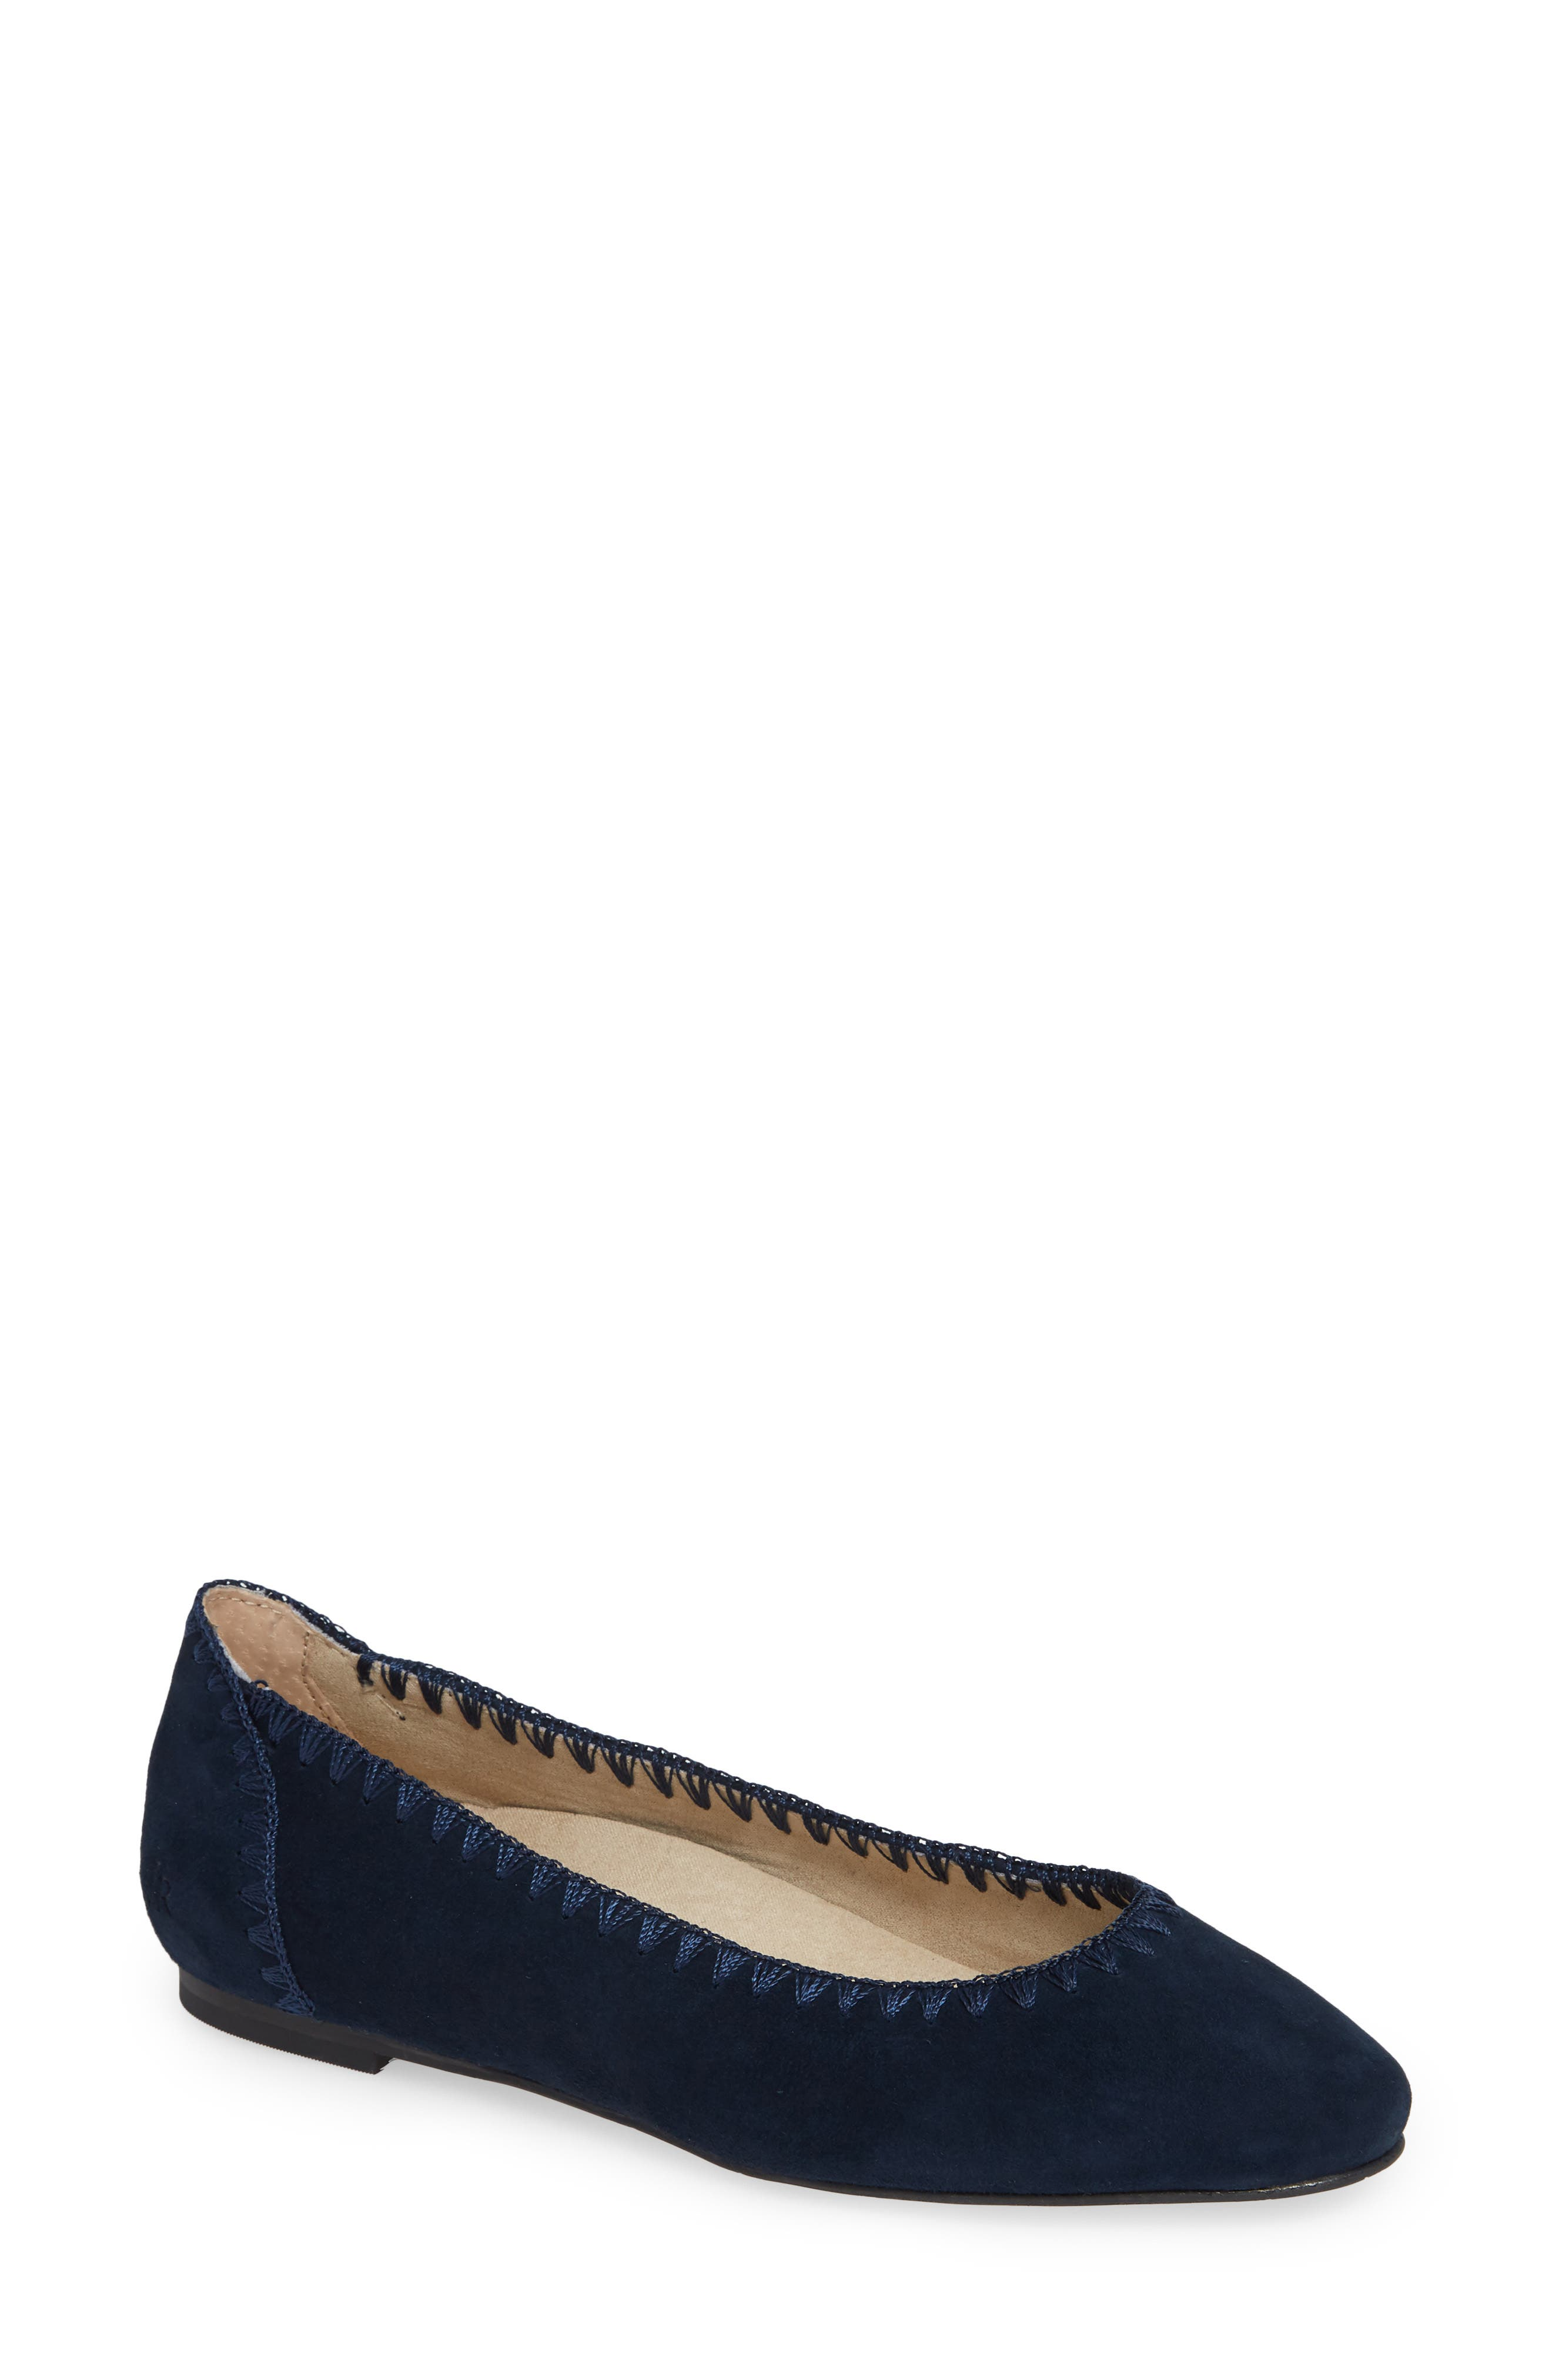 Ellie II Flat,                             Main thumbnail 1, color,                             MIDNIGHT BLUE SUEDE